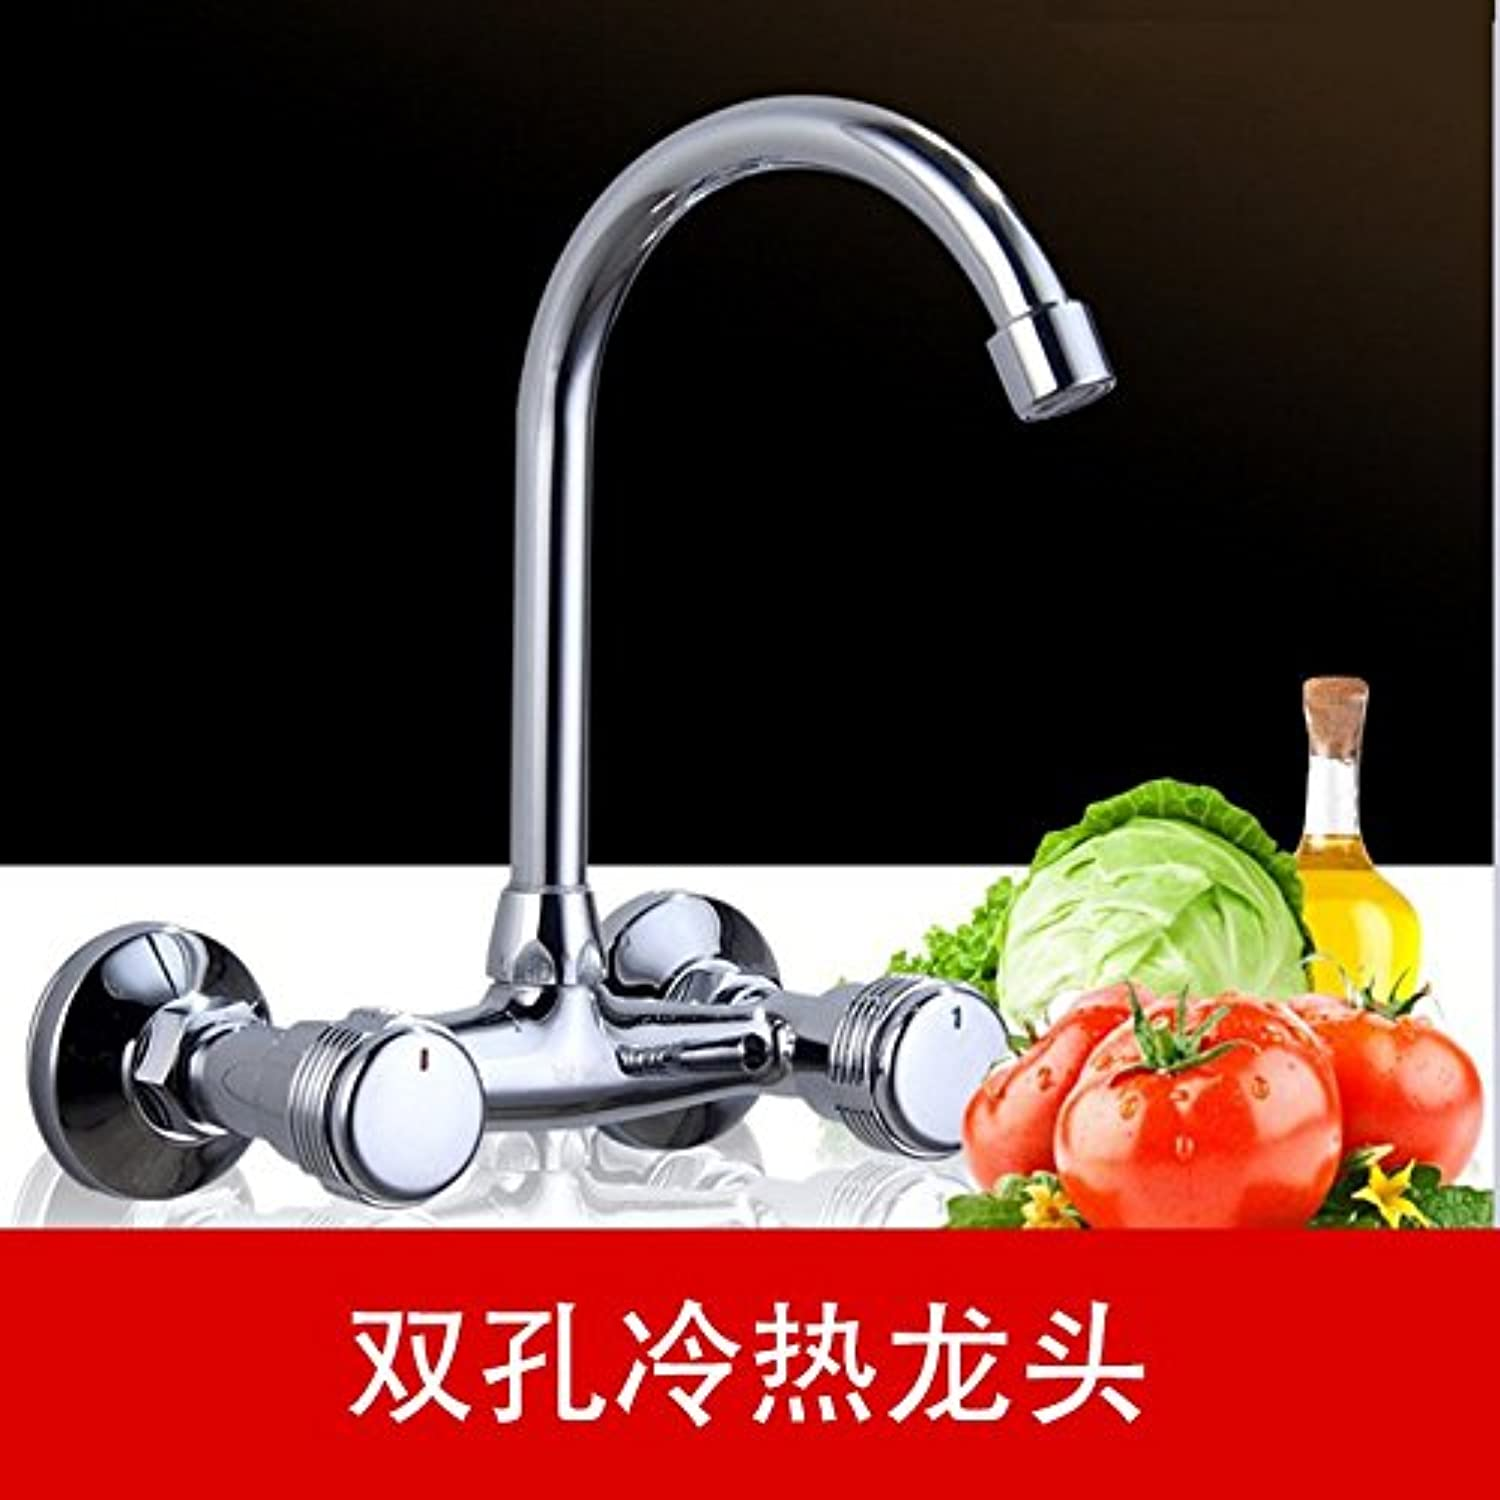 Hlluya Professional Sink Mixer Tap Kitchen Faucet Bath free full brass body into the WALL MOUNTED KITCHEN FAUCET kitchen sink laundry bin double the COLD WATER FAUCET,YT8830